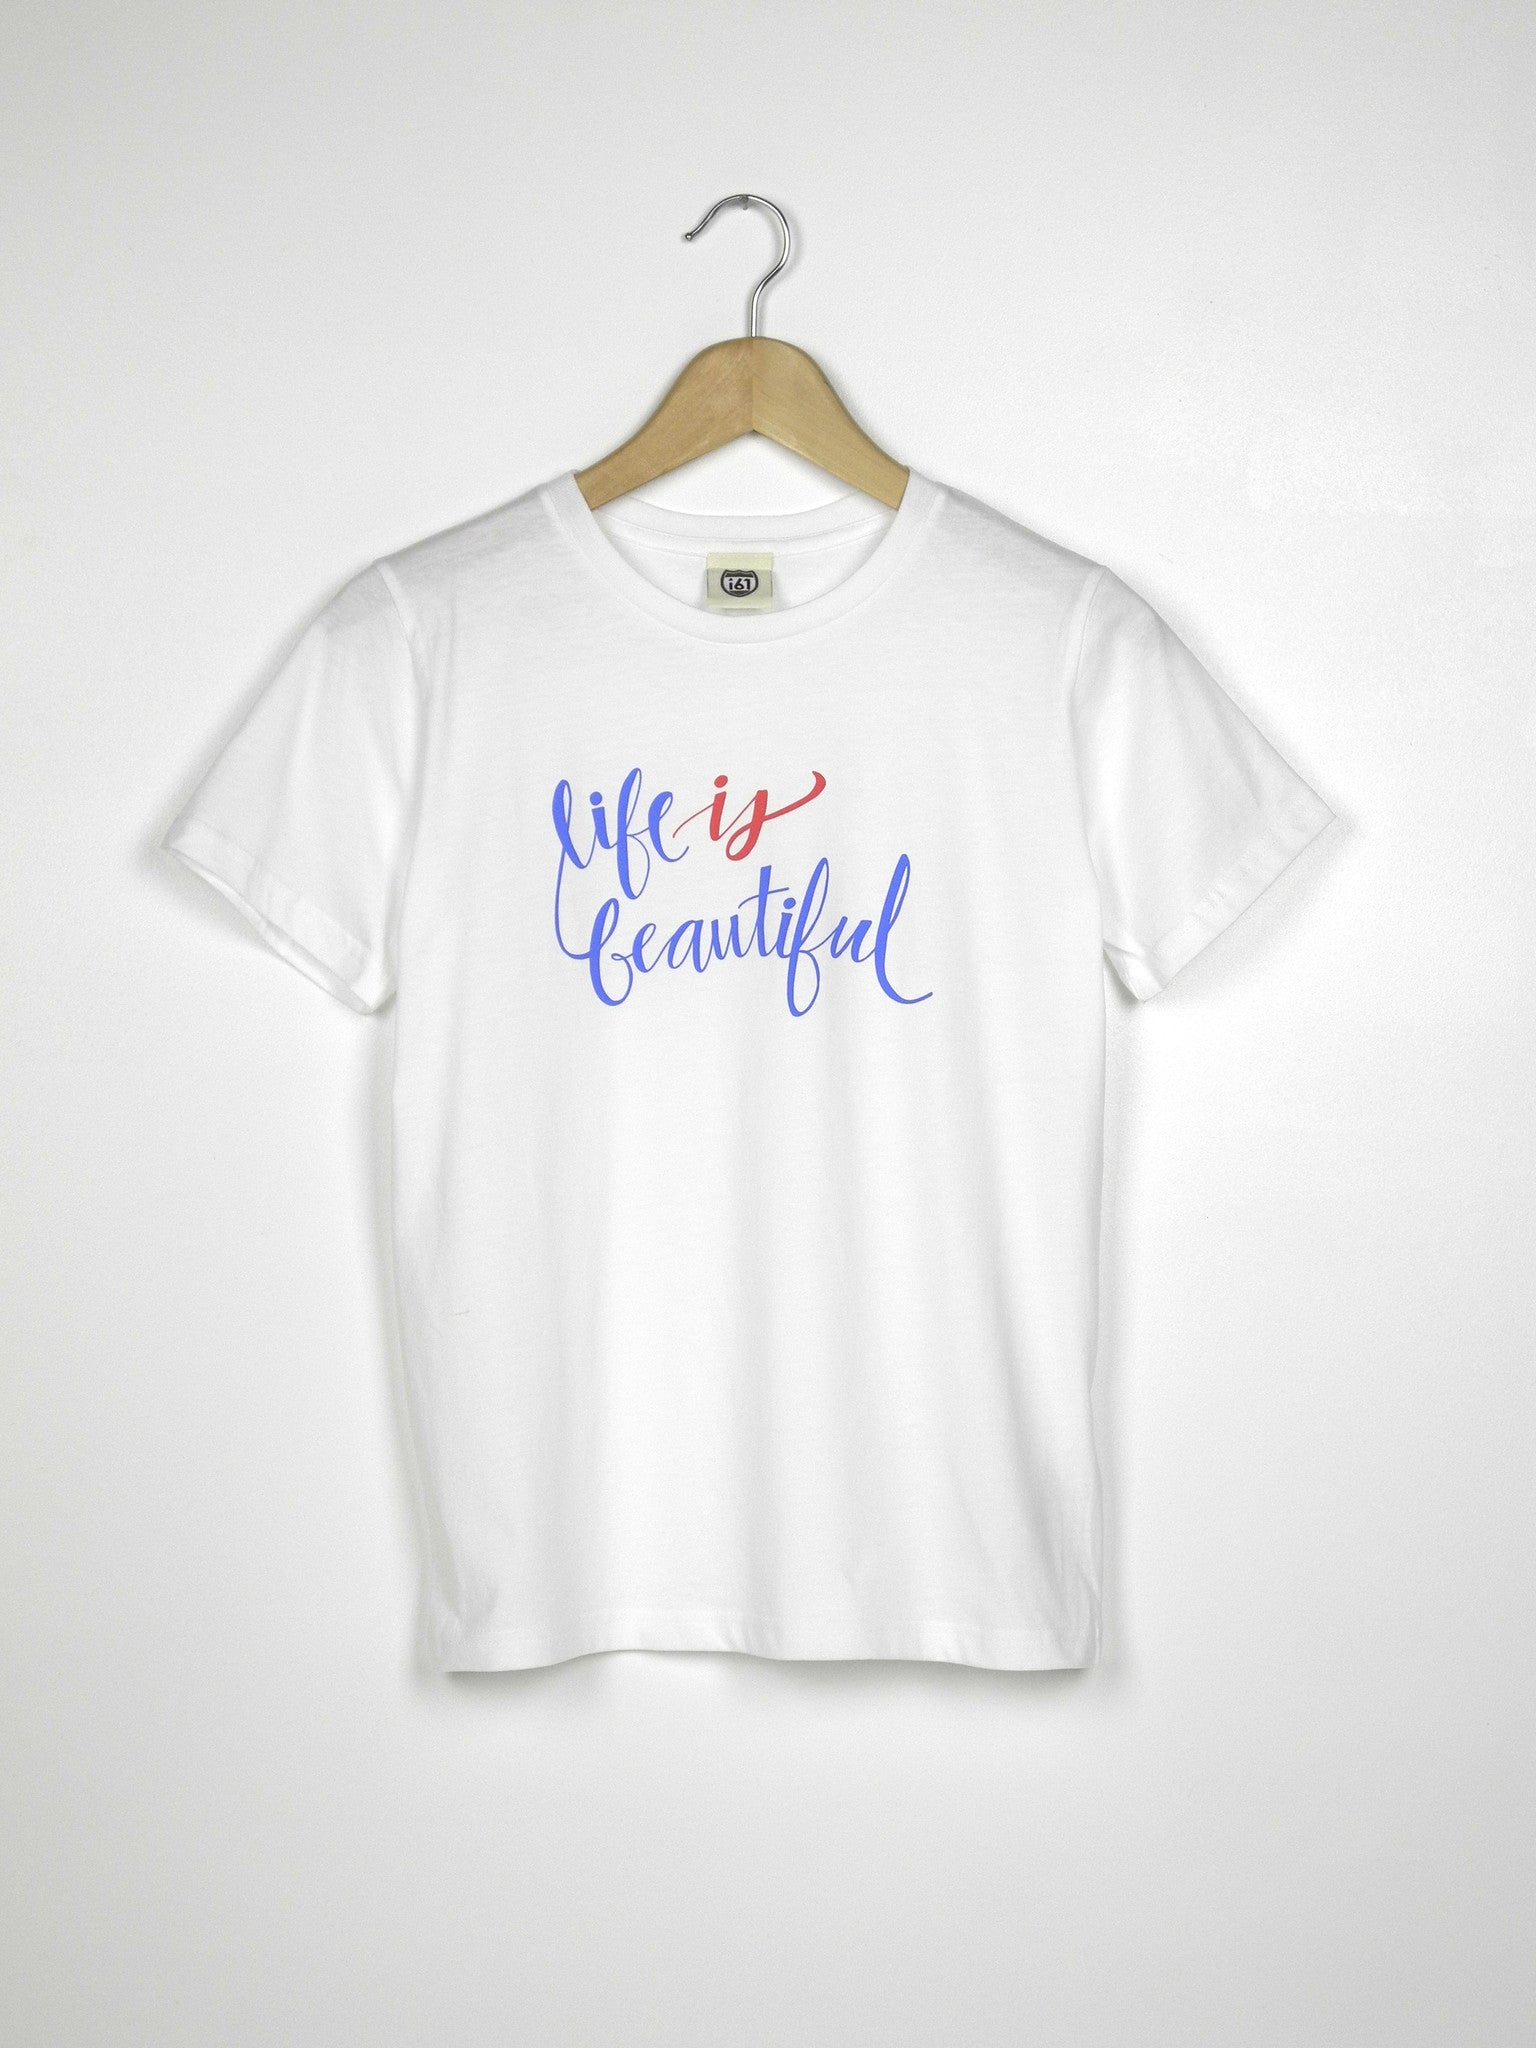 Life is Beautiful - Ethical Organic Cotton Girl's T-Shirt